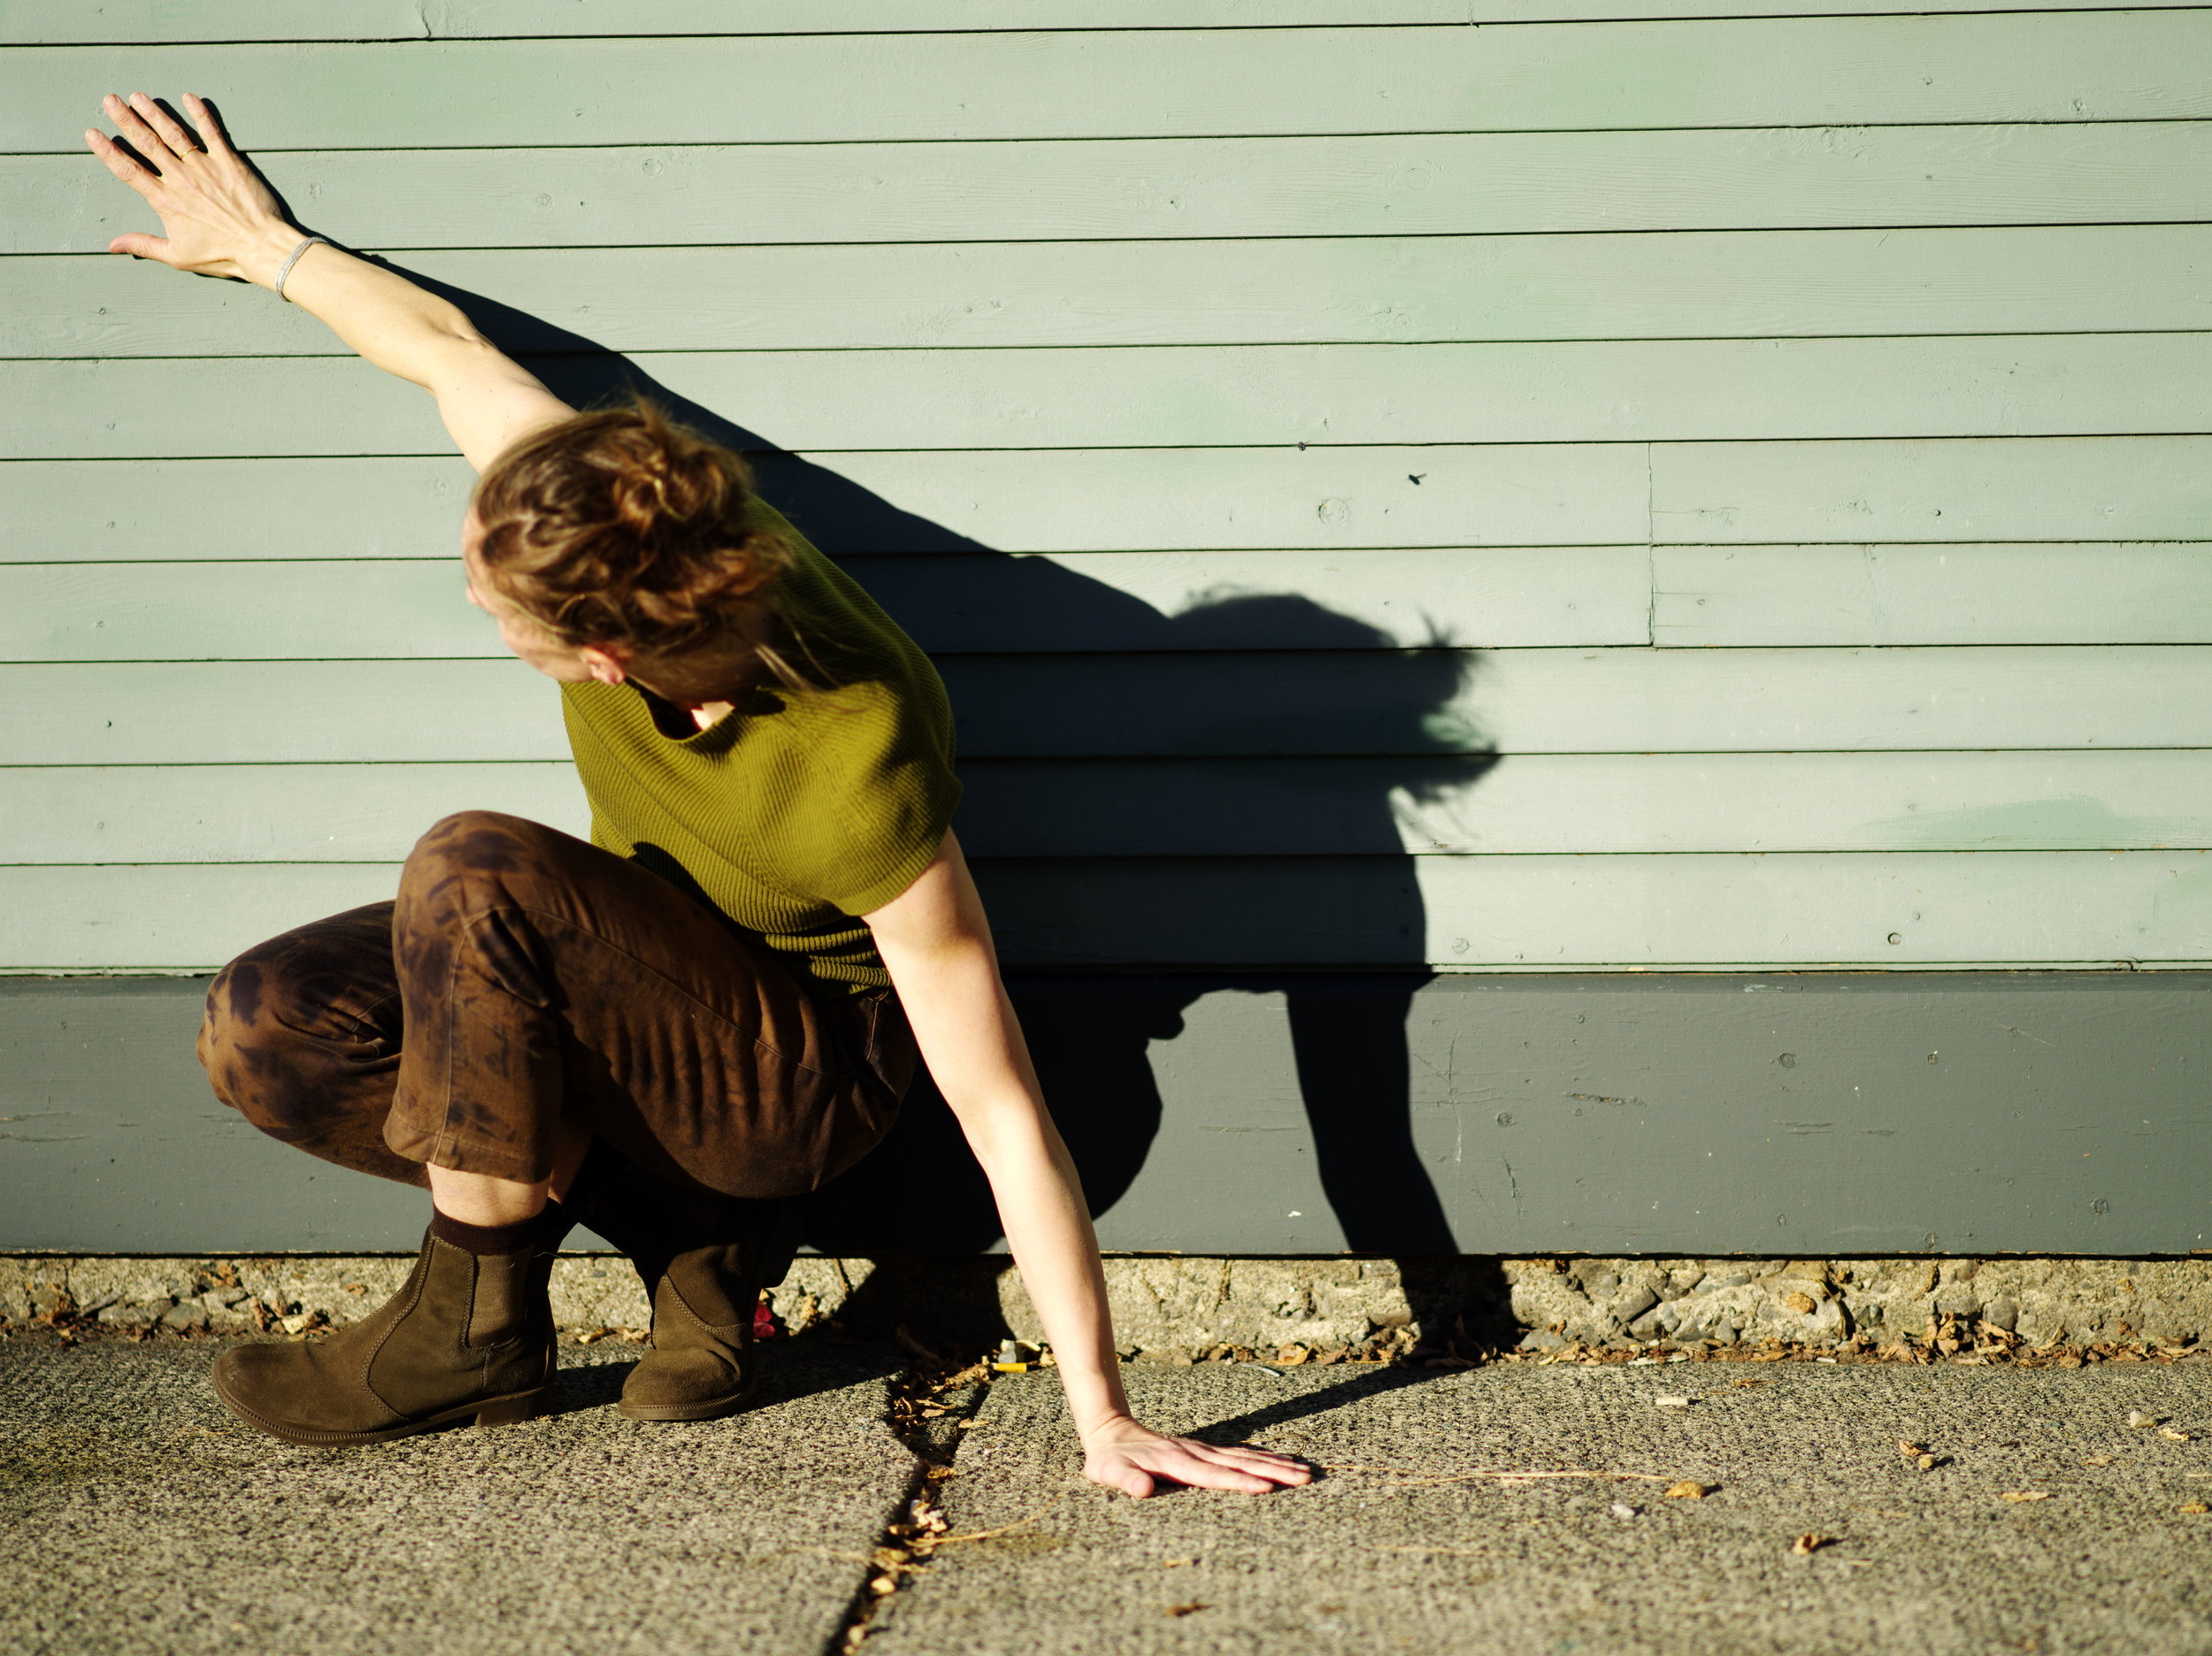 Small Stages - Free, outdoor event:Saturday July 13 Bute-Robson Plaza @ 4pmSunday July 14 North Vancouver Shipyards @ 4pmChoreographer / Performer : Olivia ShafferMusic: Peter GregsonAn excerpt of a longer work that will be premiered at the Annex Theatre on November 16-17, 2019, presented by New Works.Senescence is a personal reflection into my caregiving journey, through my father's struggle with Parkinson's disease and dementia. senescence (/sɪˈnɛsəns/): biological aging; the gradual deterioration of functional characteristics that occurs in the mind and body.